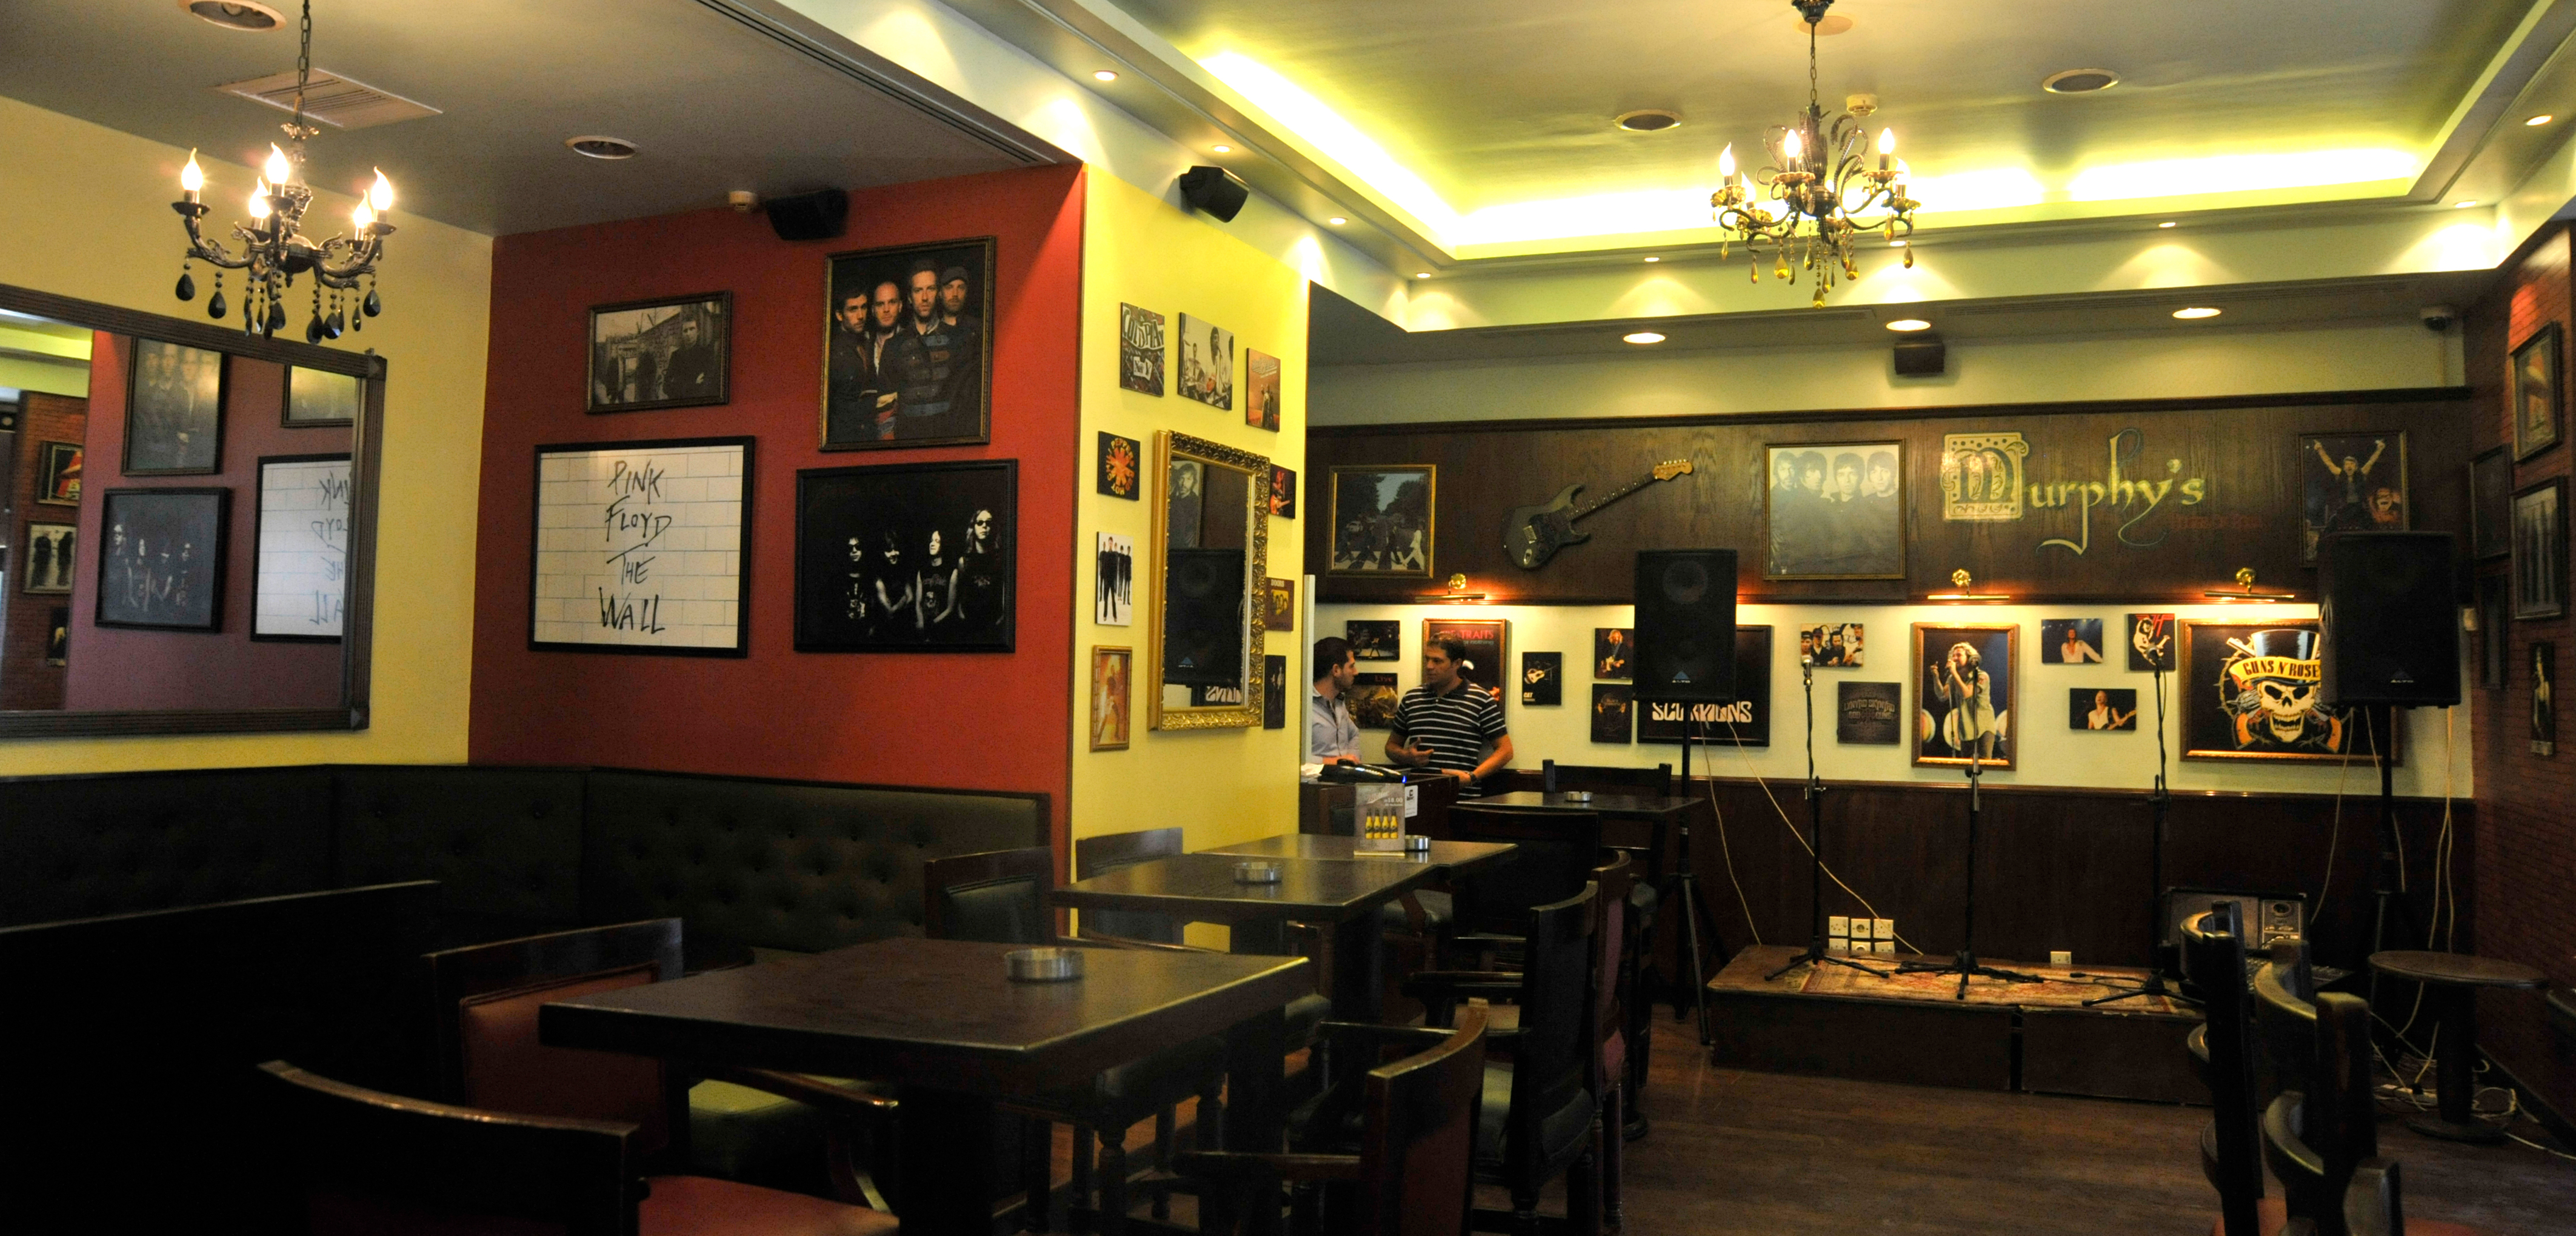 murphy's house of ruck pub at the conroy boutique hotel amman jordan